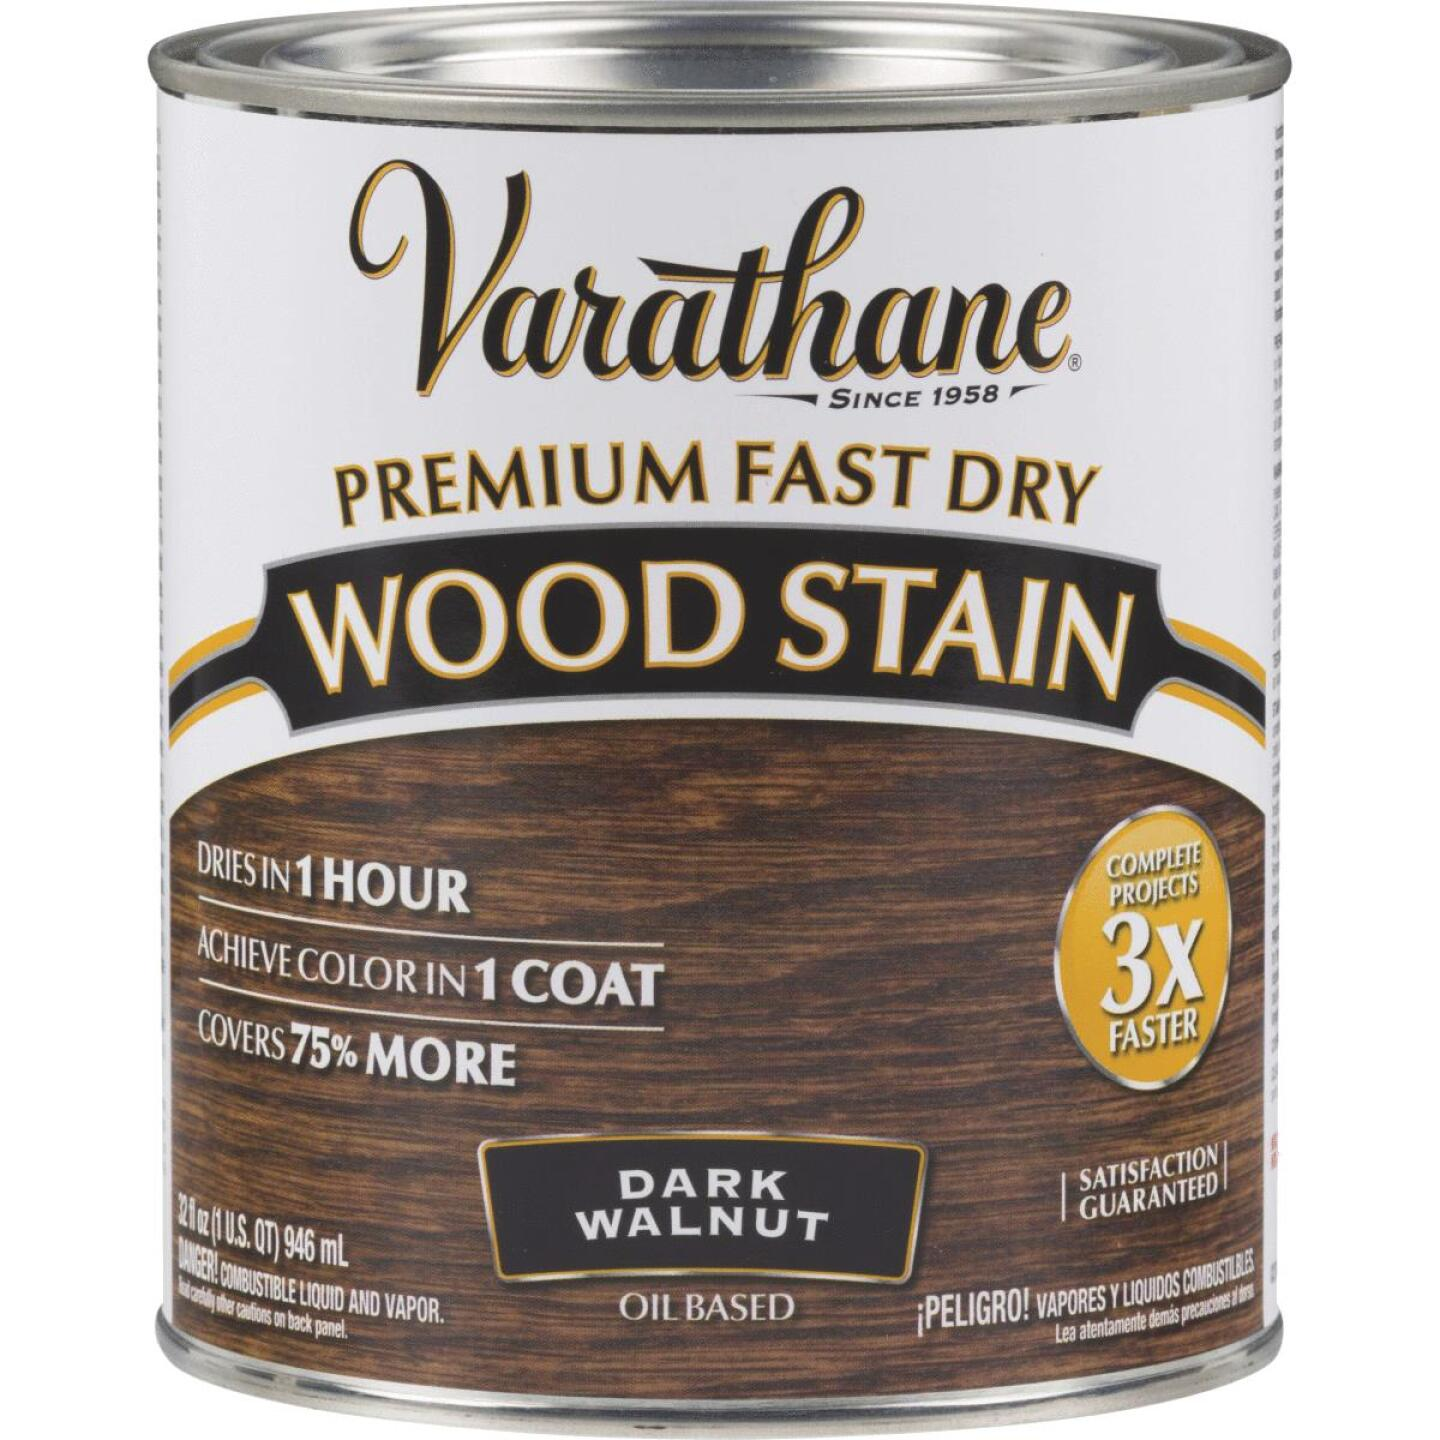 Varathane Fast Dry Dark Walnut Urethane Modified Alkyd Interior Wood Stain, 1 Qt. Image 1